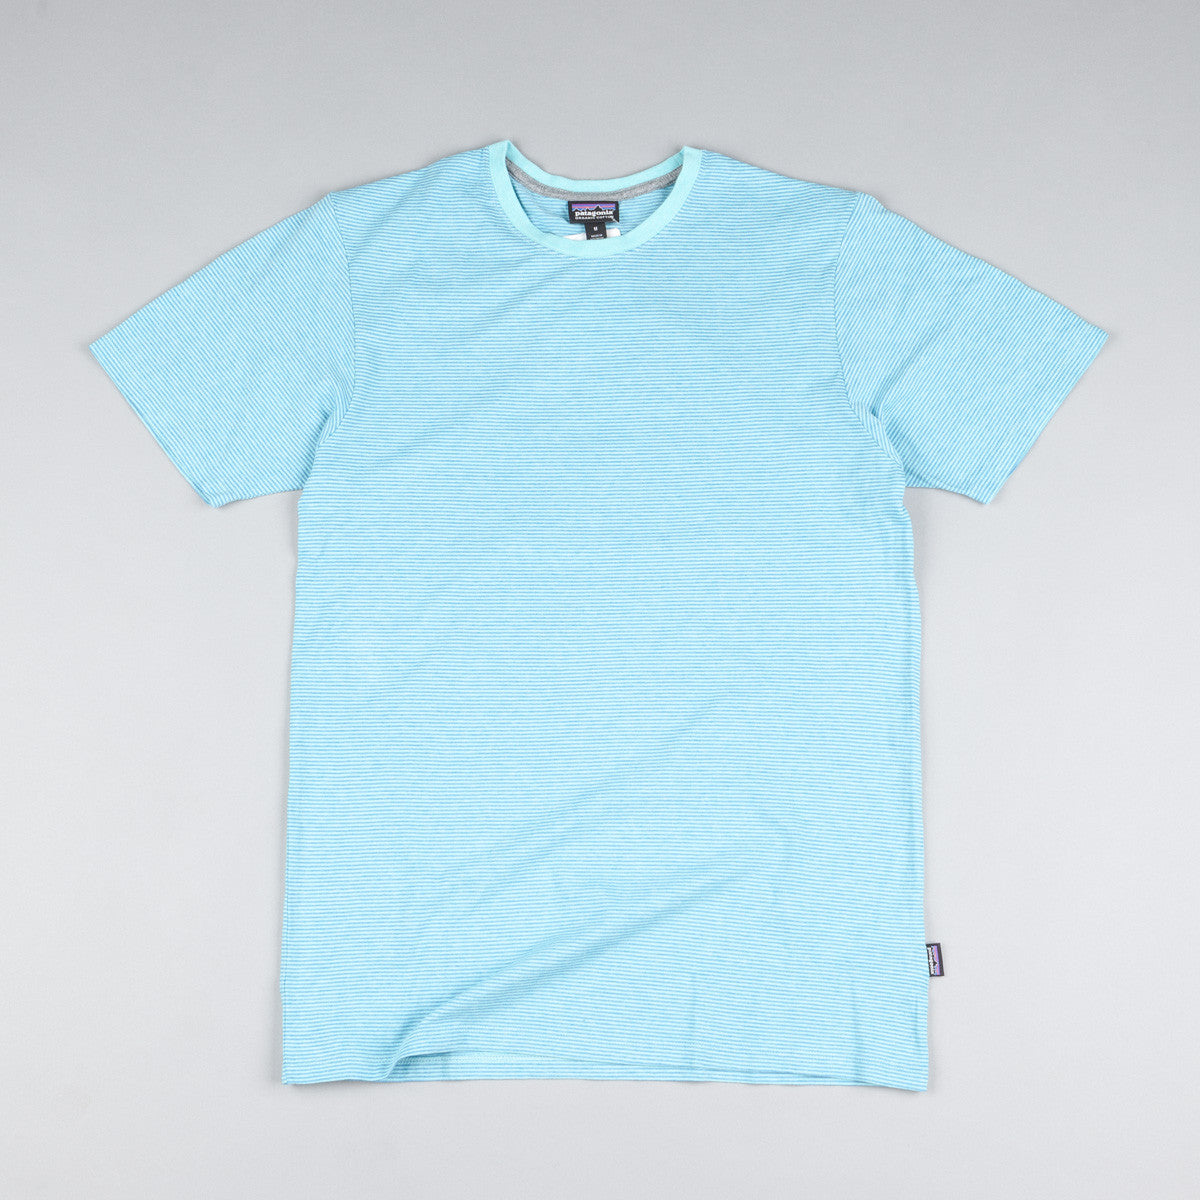 Patagonia Daily T-Shirt - Fathom Howling Turquoise